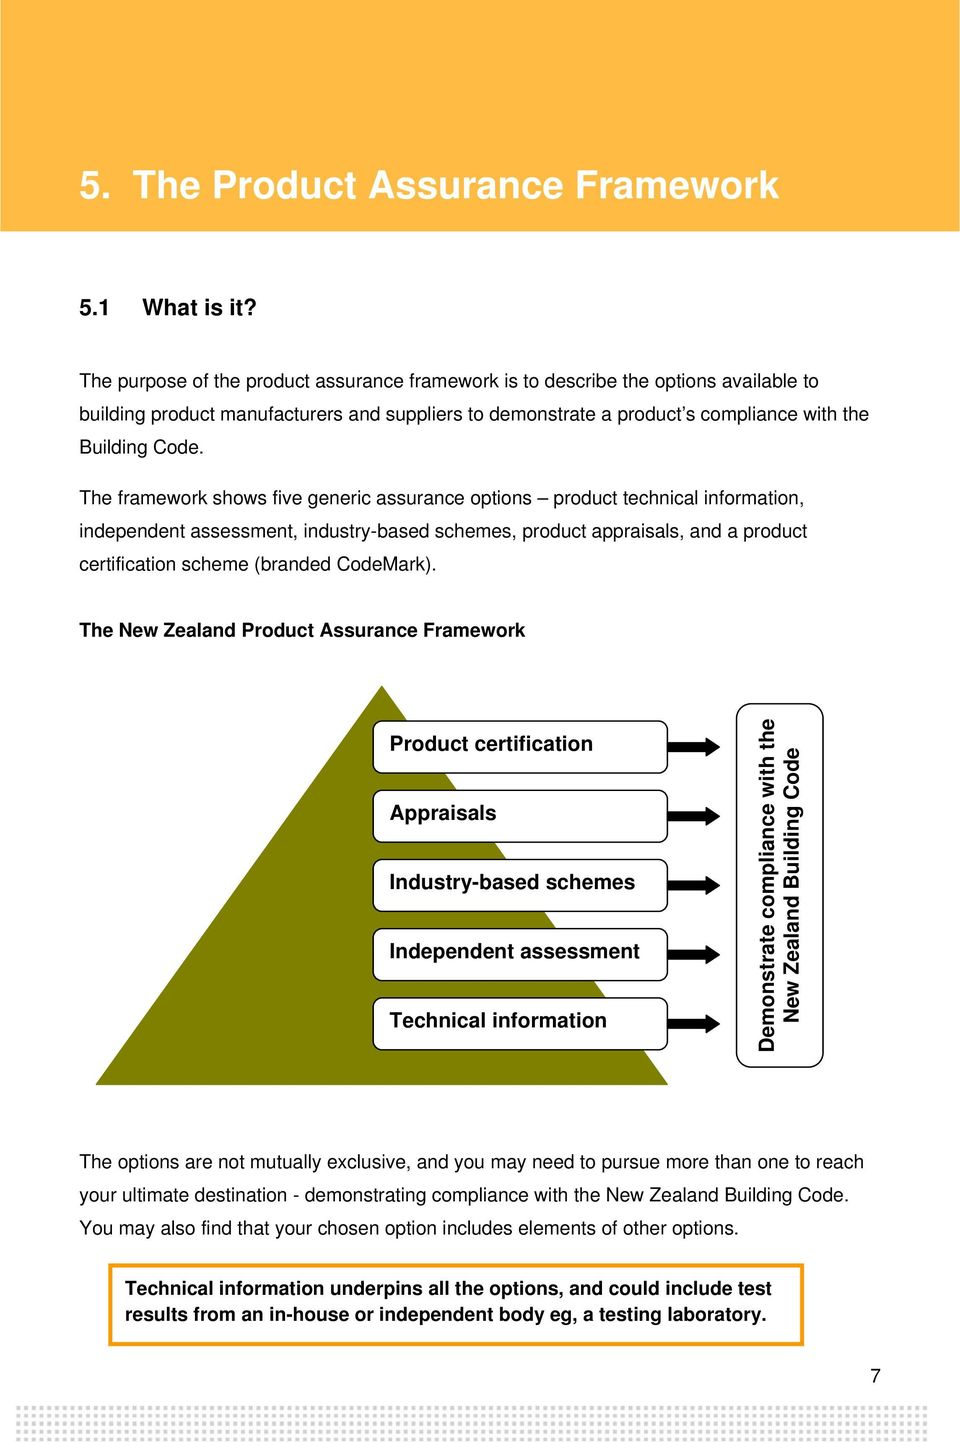 The framework shows five generic assurance options product technical information, independent assessment, industry-based schemes, product appraisals, and a product certification scheme (branded